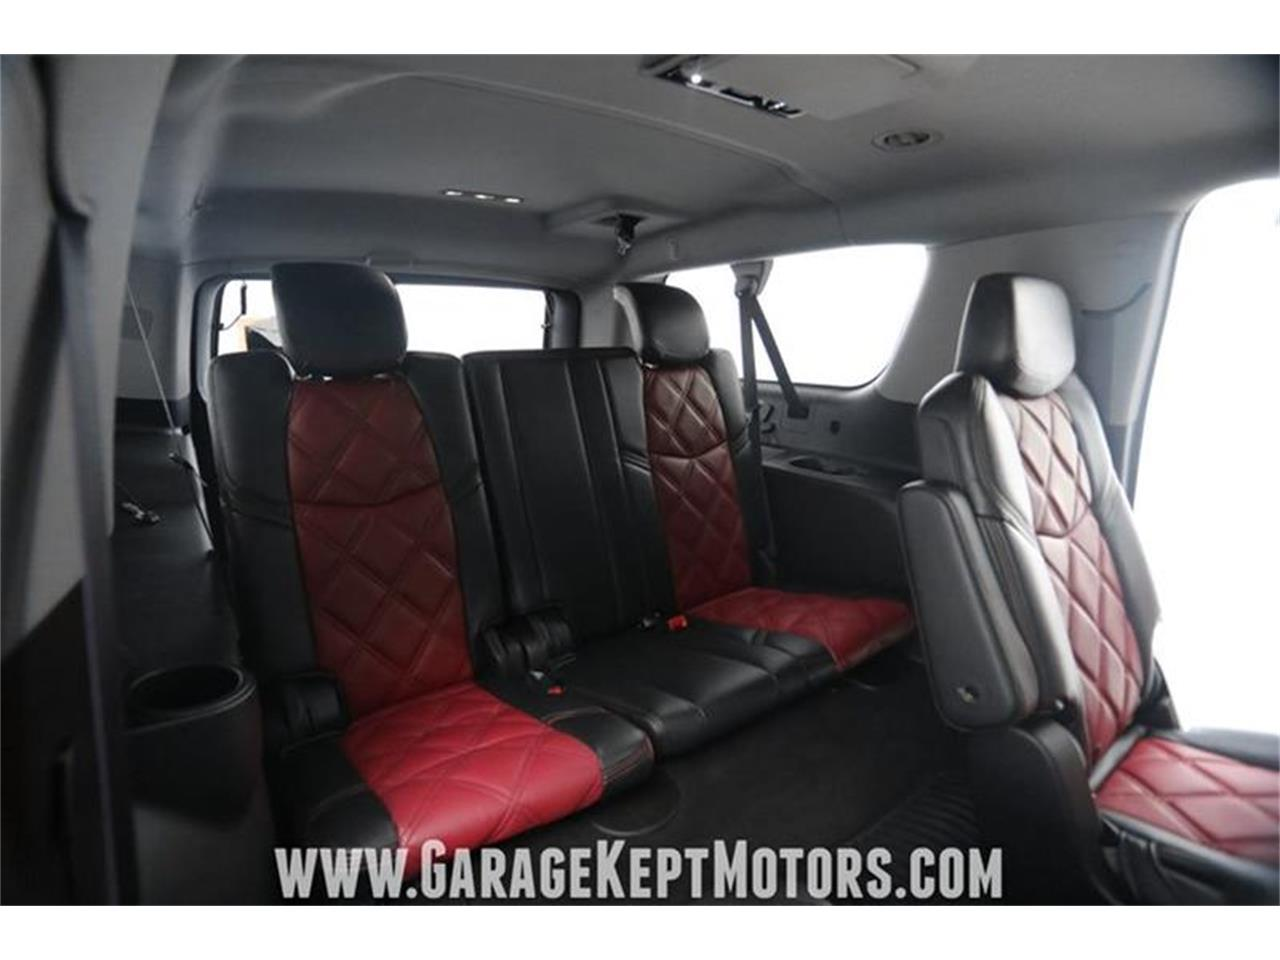 2015 Cadillac Escalade for sale in Grand Rapids, MI – photo 28